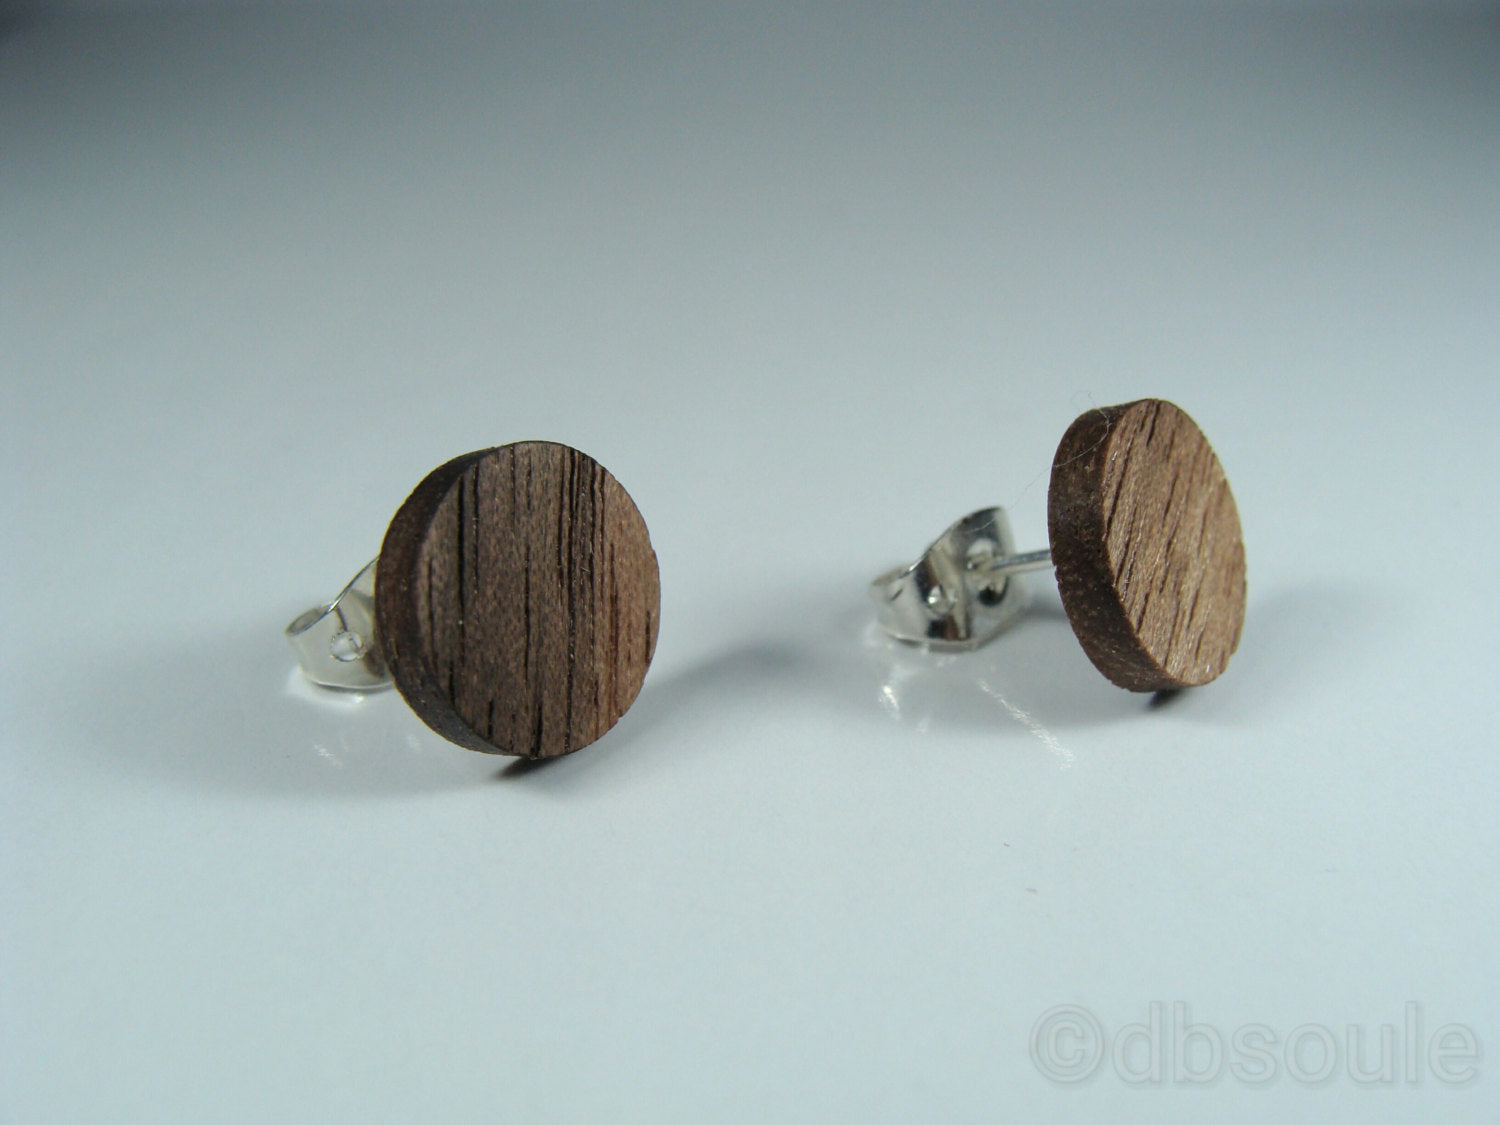 Walnut Wood Earrings - Stud or Dangle - Multiple Sizes - Art and Soule